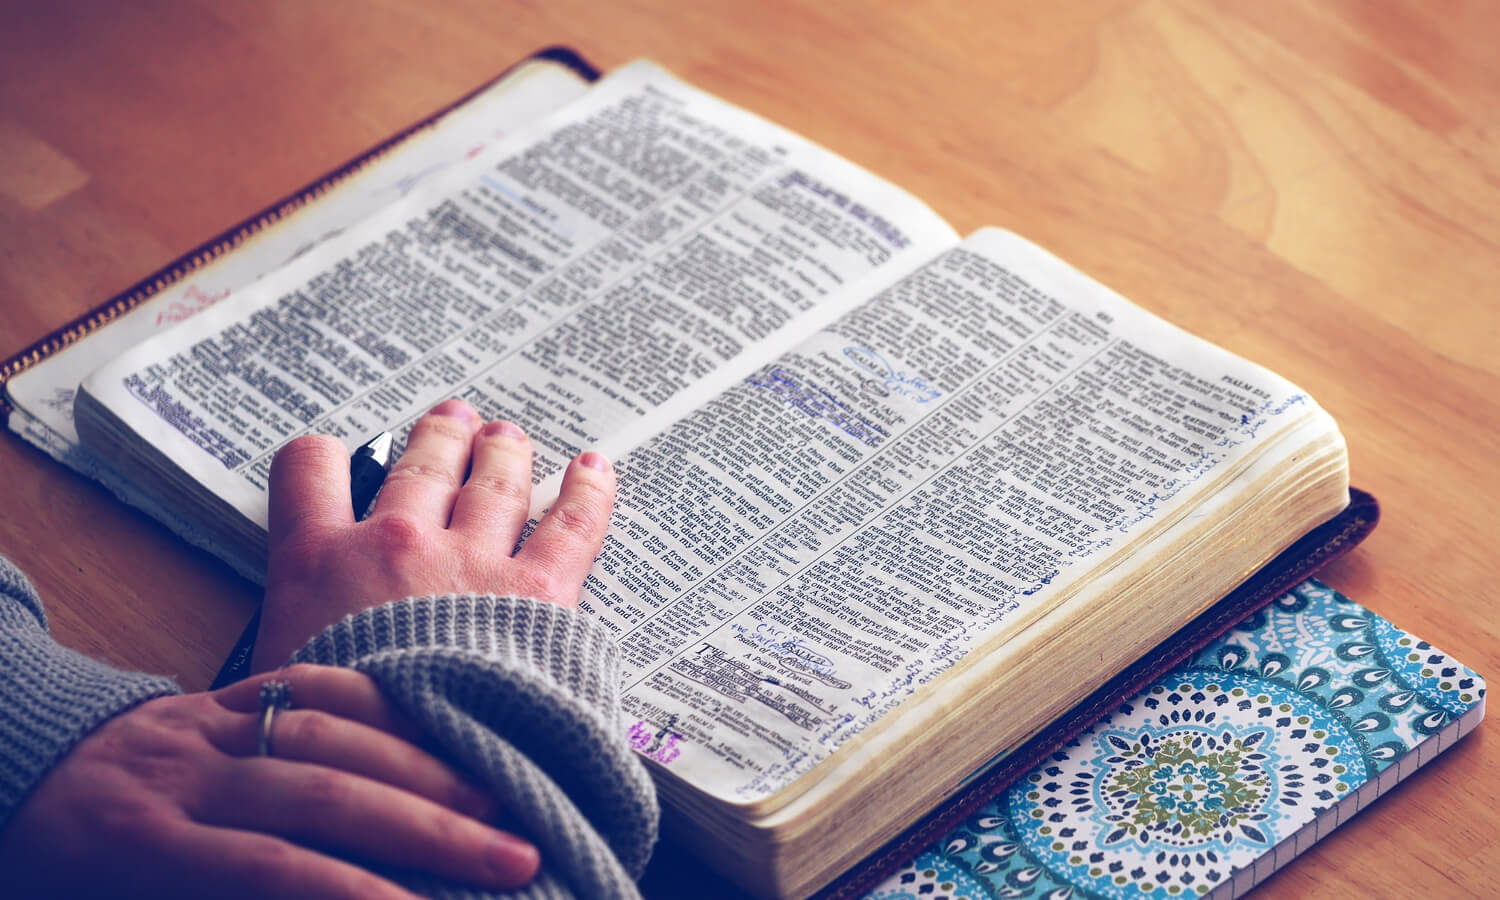 What is the message of the Bible